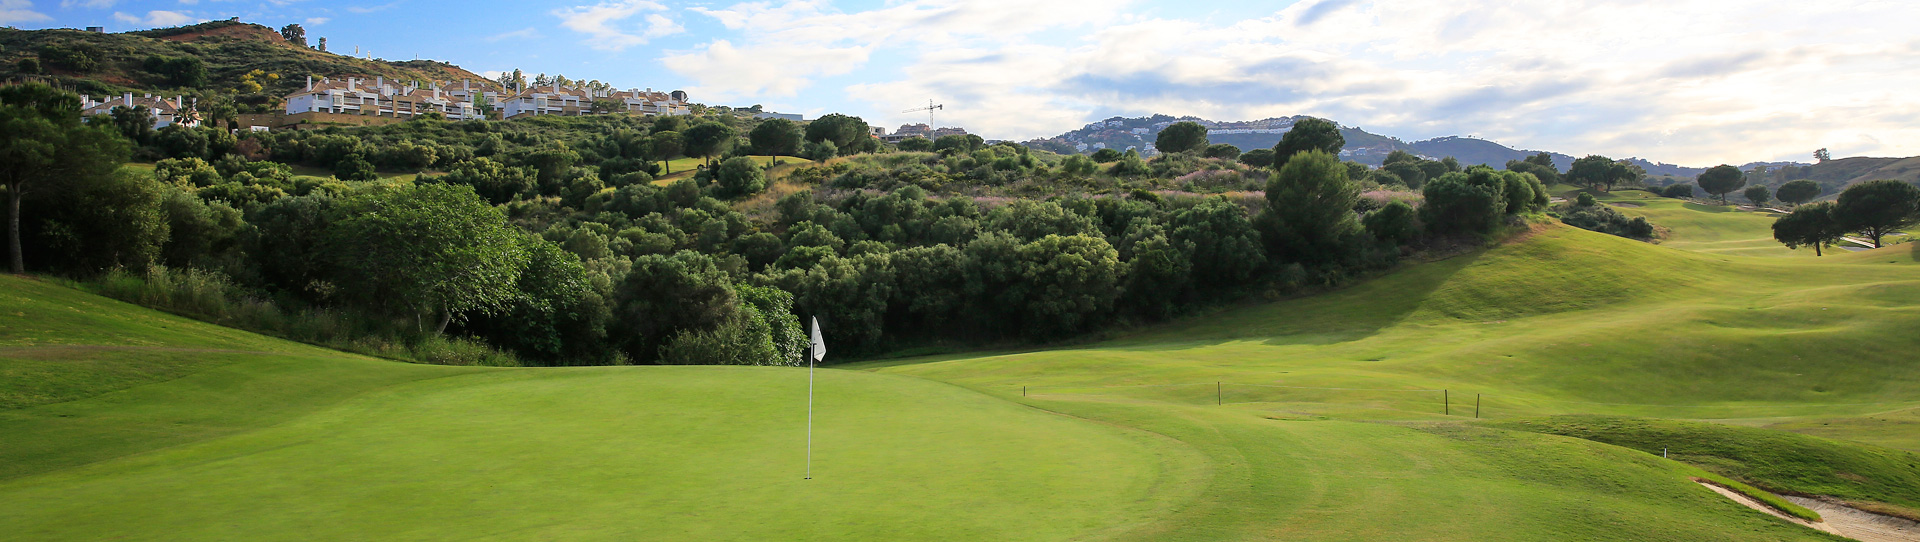 La Cala Golf Passport - Photo 2